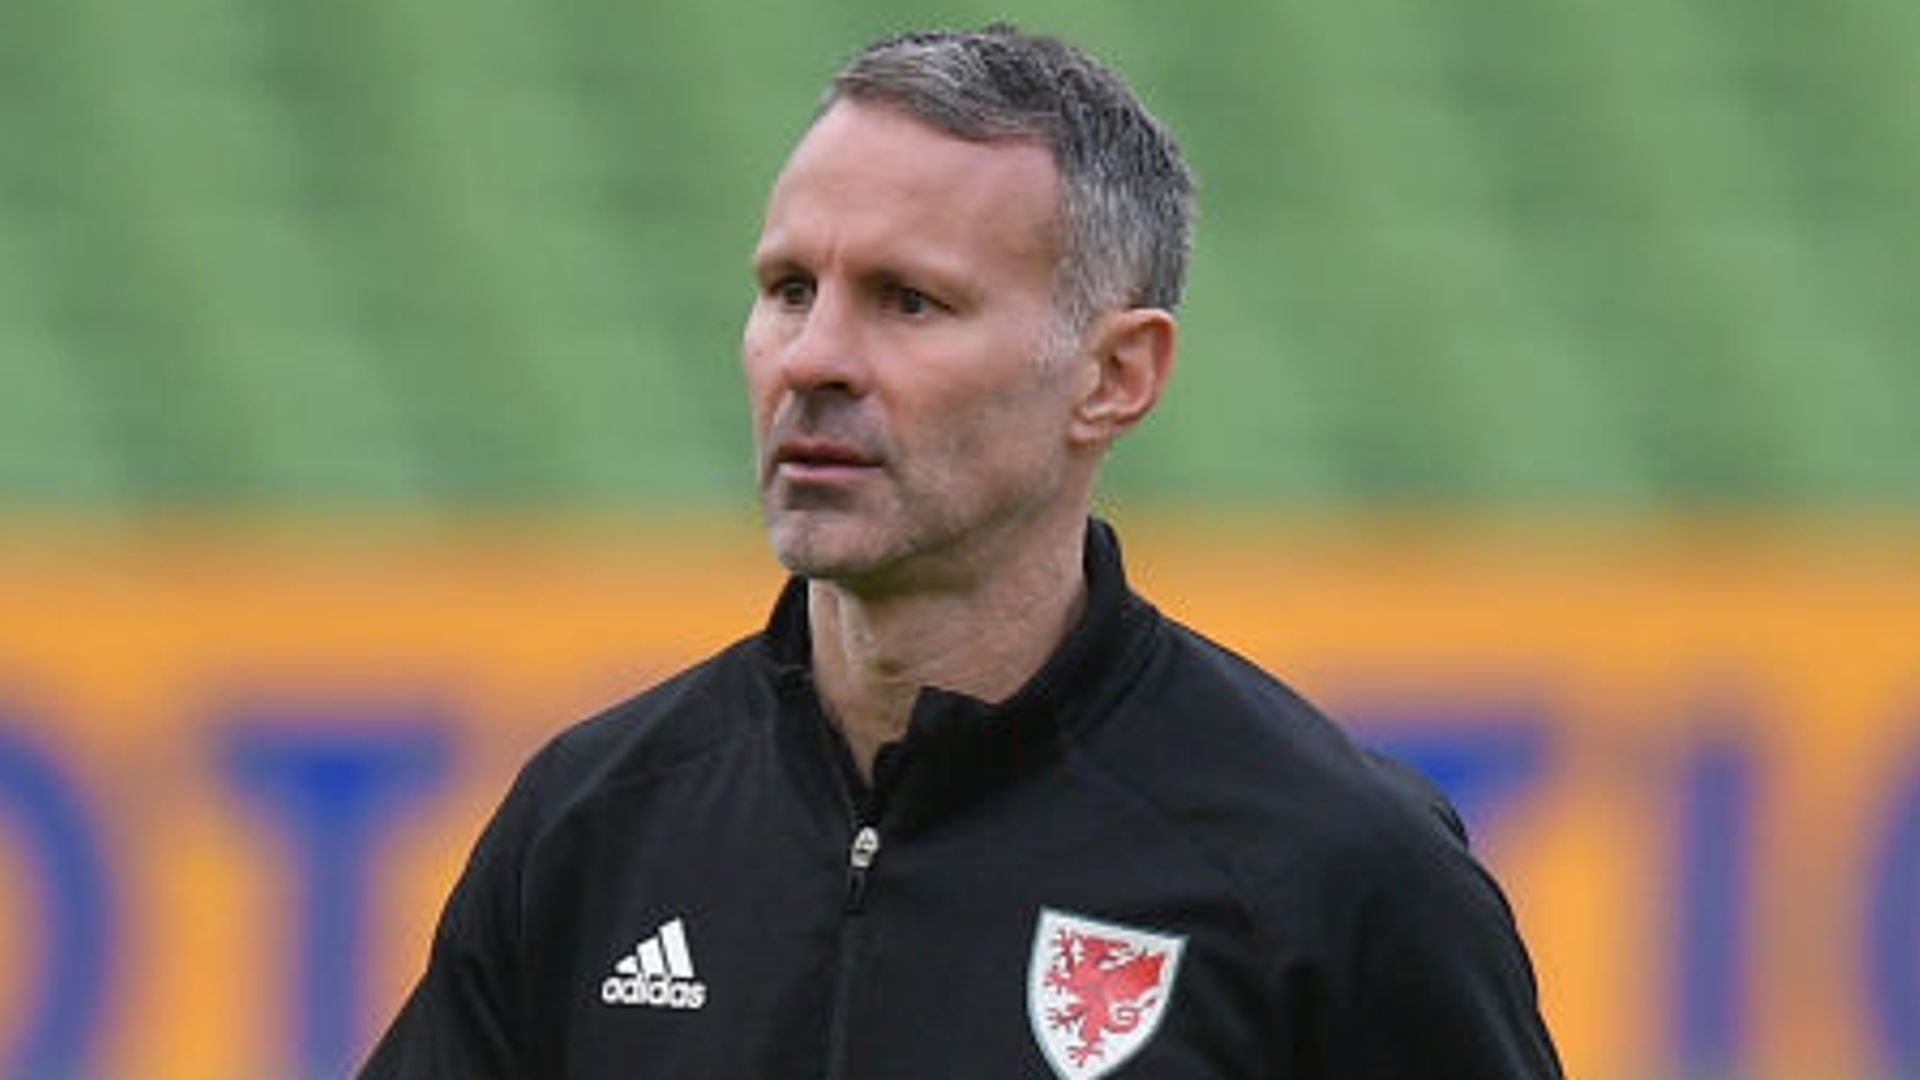 Giggs: I was made to feel 'different' due to race